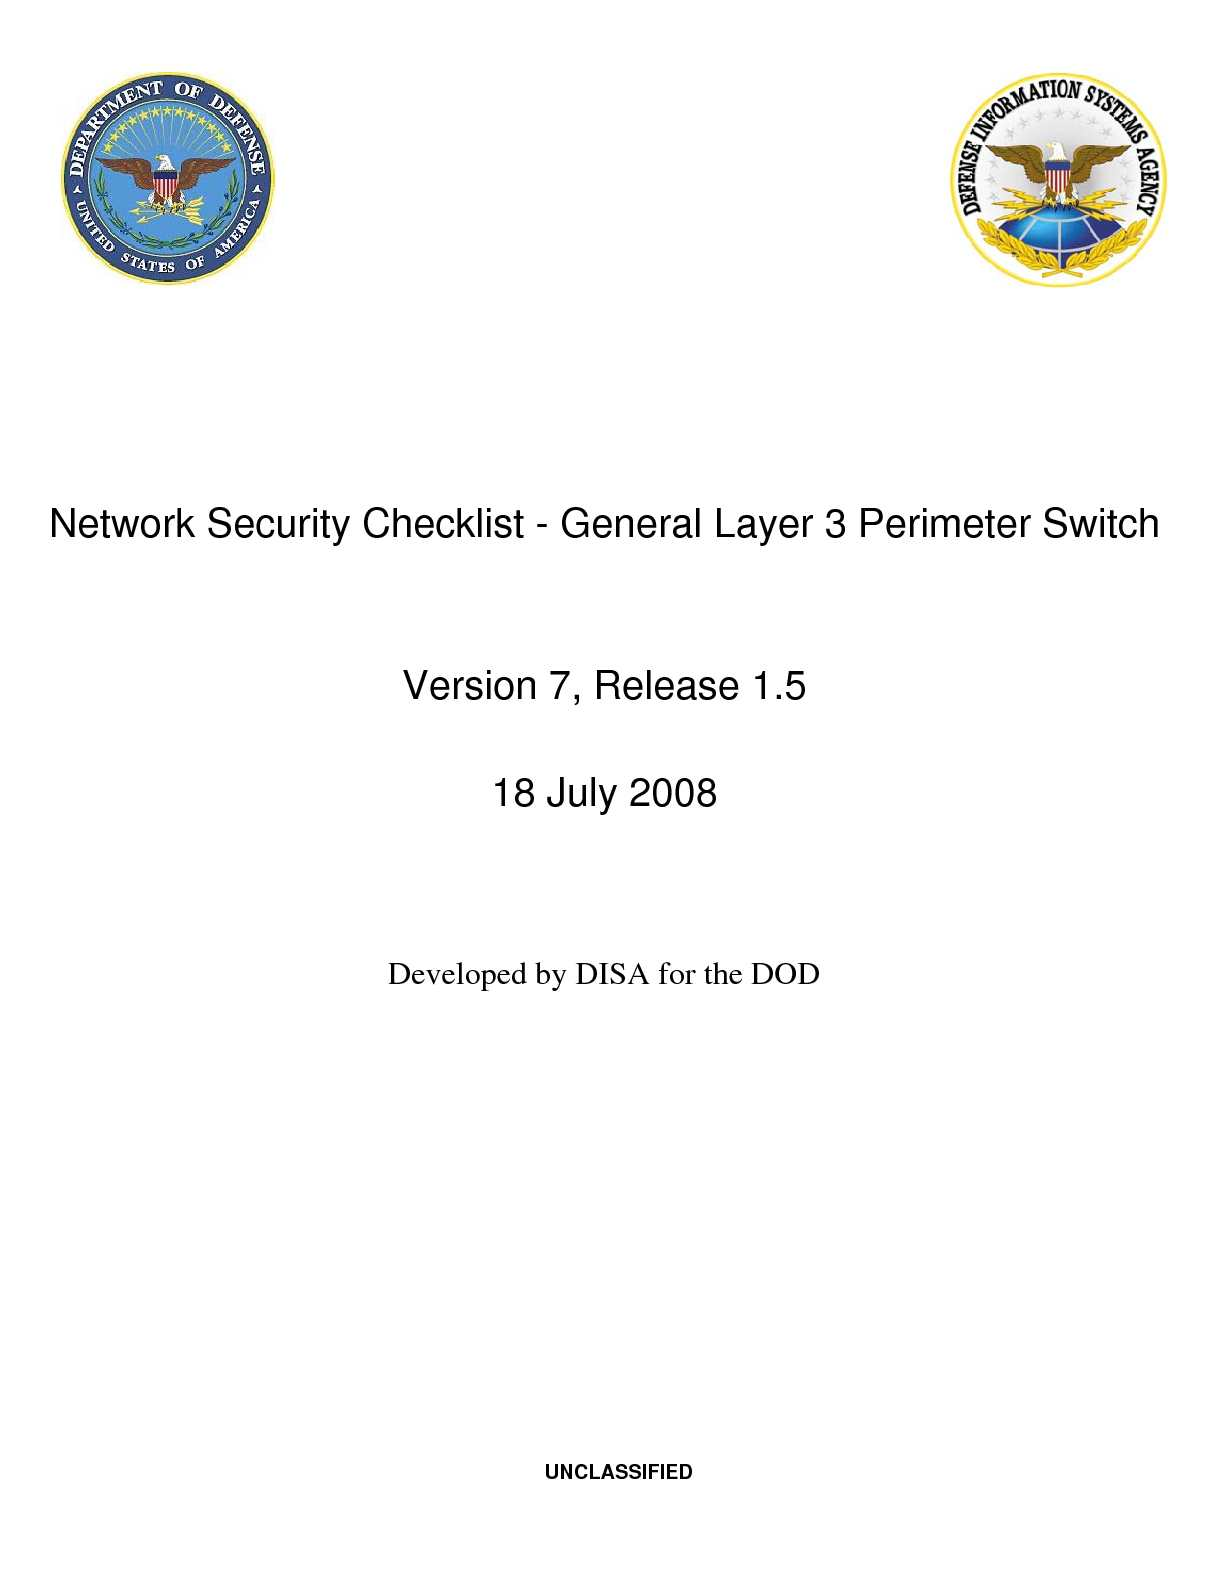 Network Security Checklist - General Layer 3 Perimeter Switch - 18 July 2008